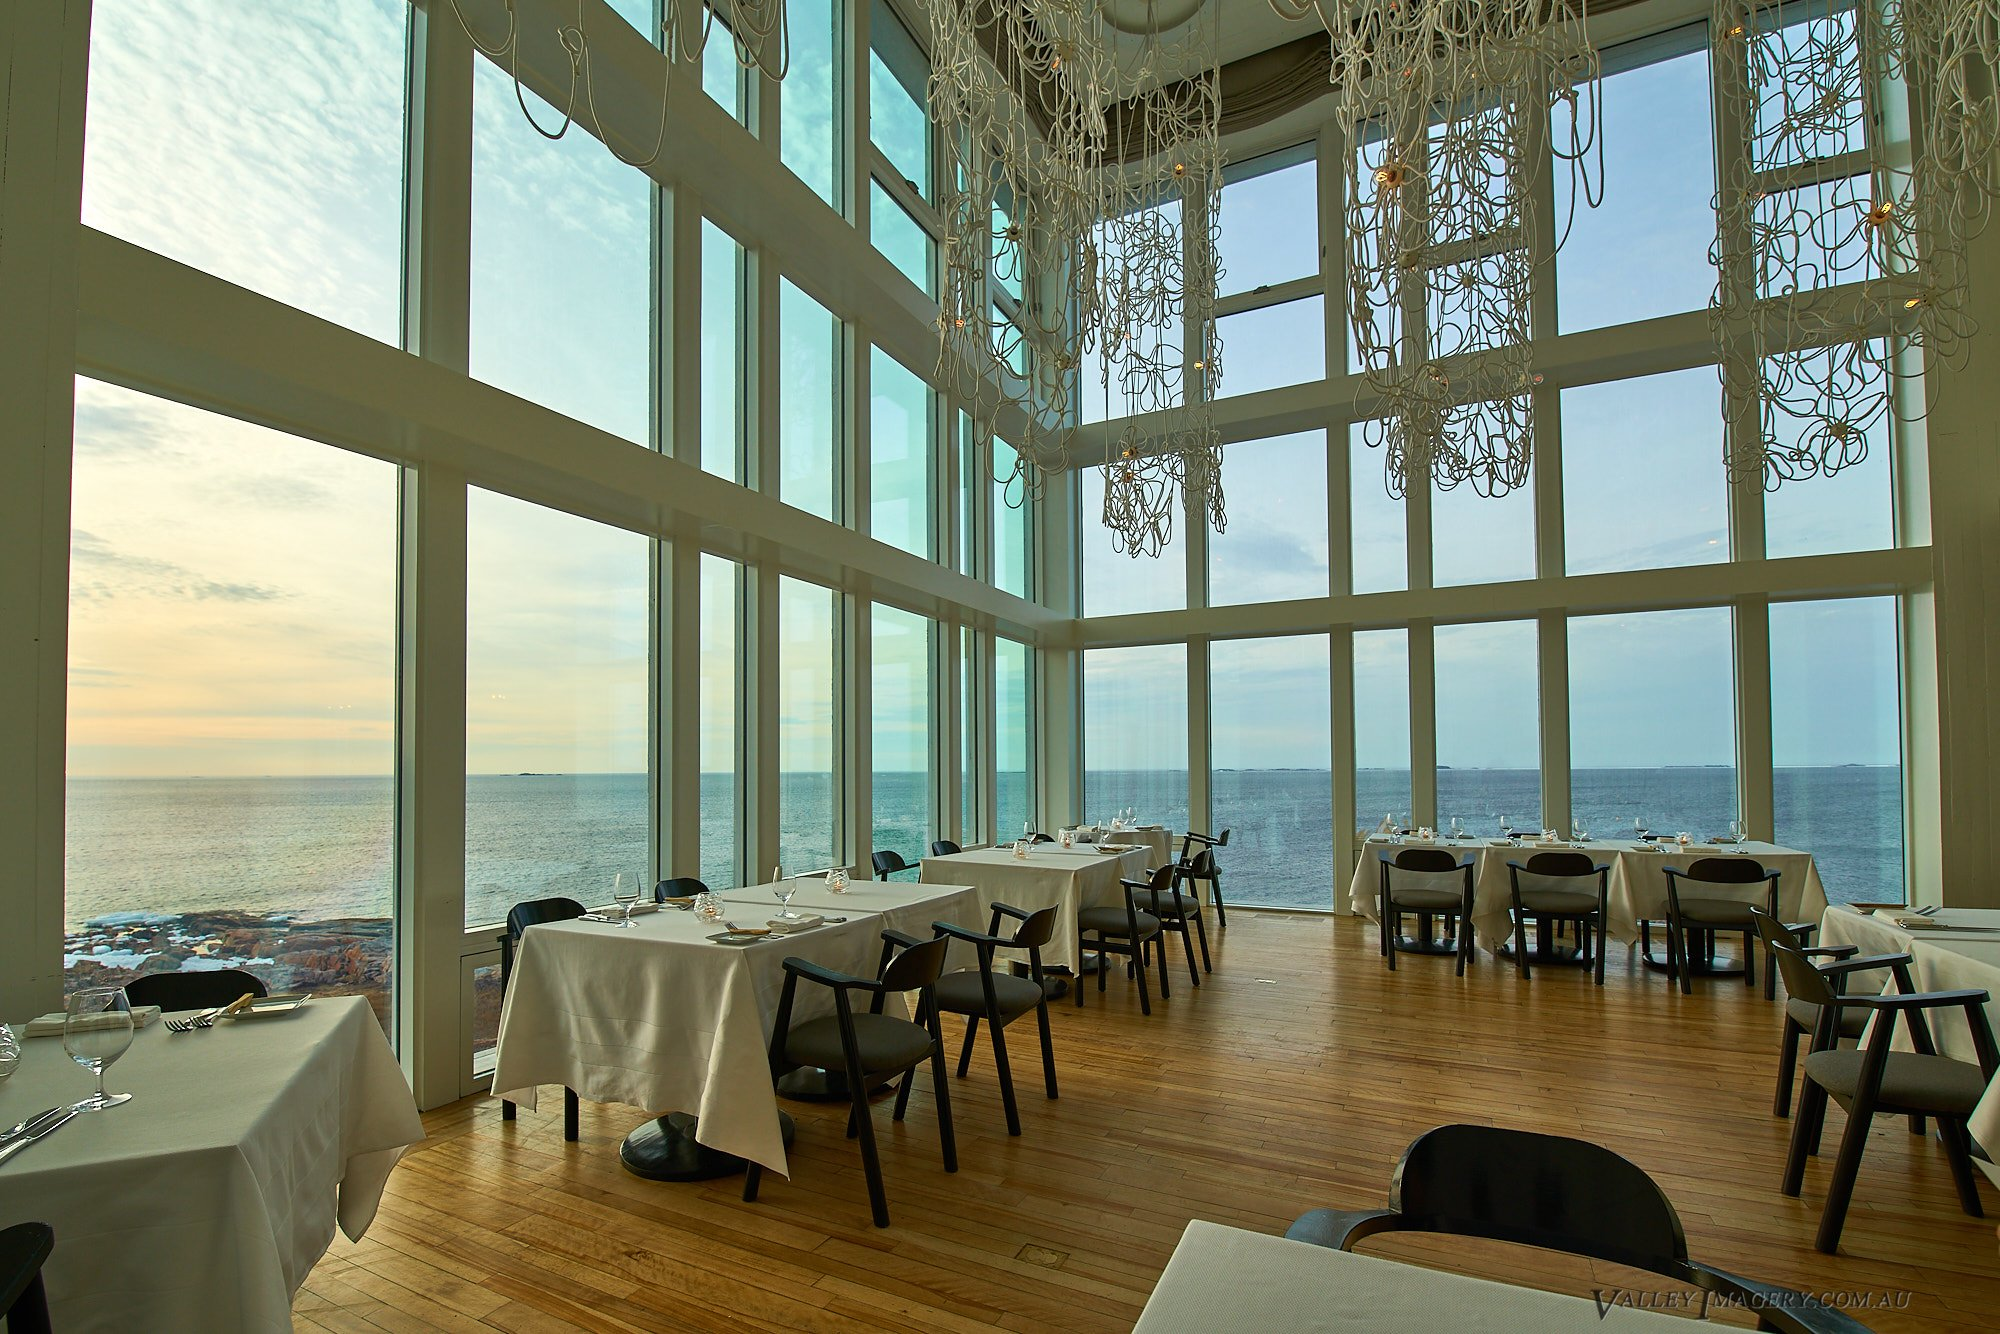 The dining room in the Fogo Island Inn.